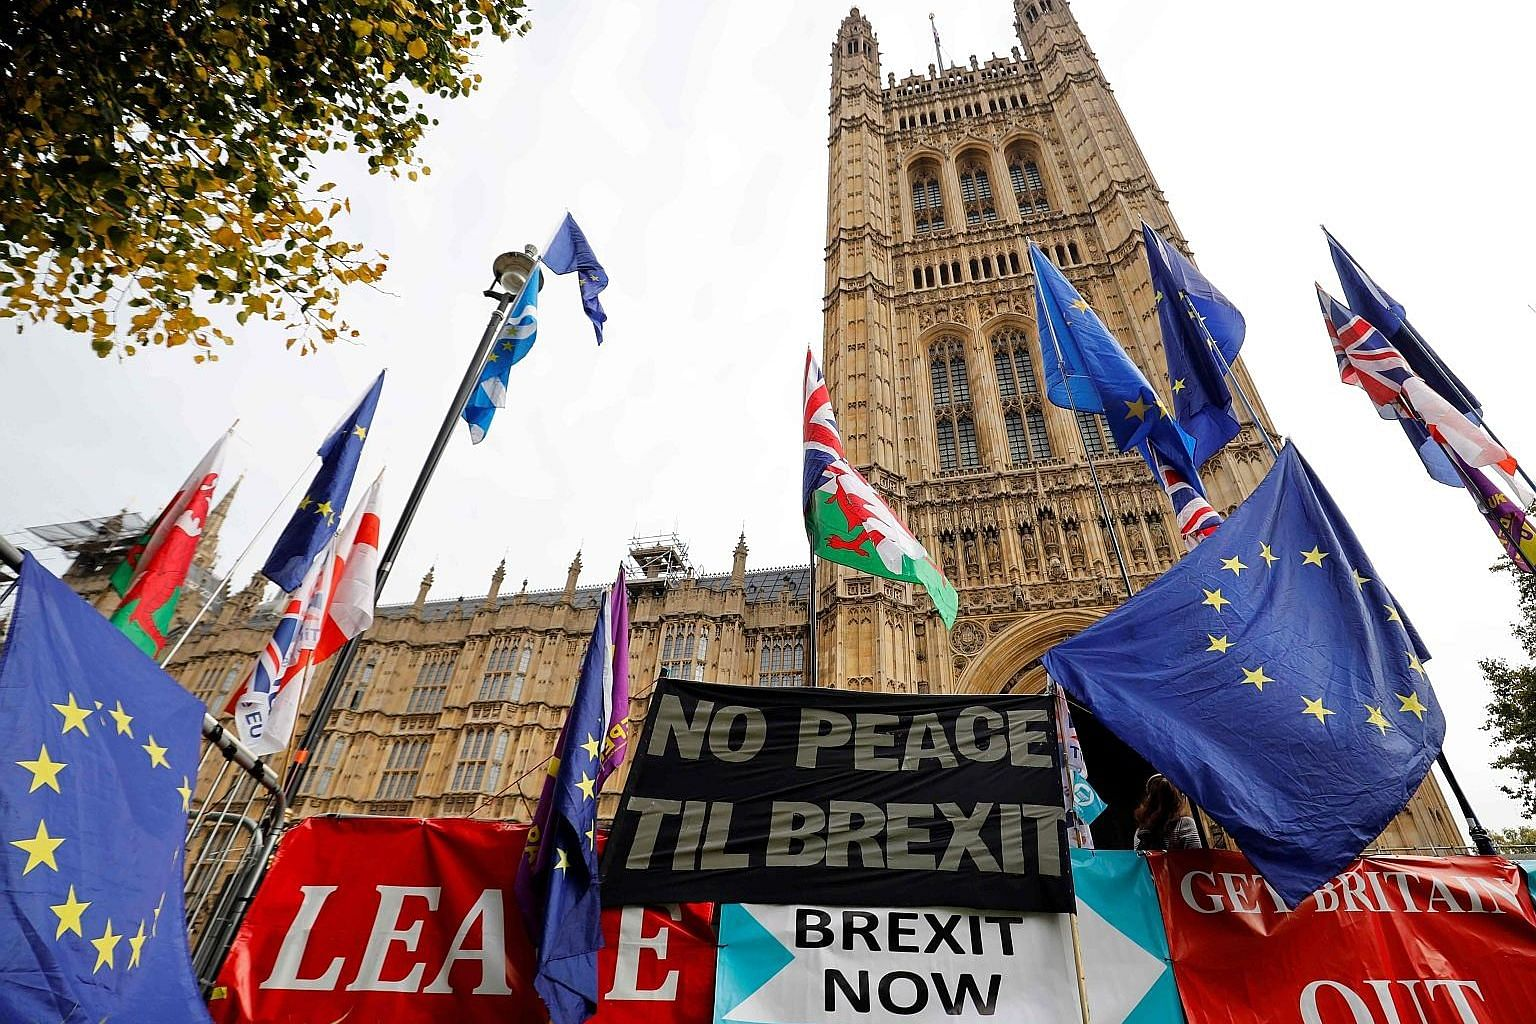 Banners and placards in support of Brexit (top) and against it (above) during protests outside the Houses of Parliament in London on Wednesday. No matter what Prime Minister Boris Johnson decides to do, Britain's links to Europe are unlikely to be re